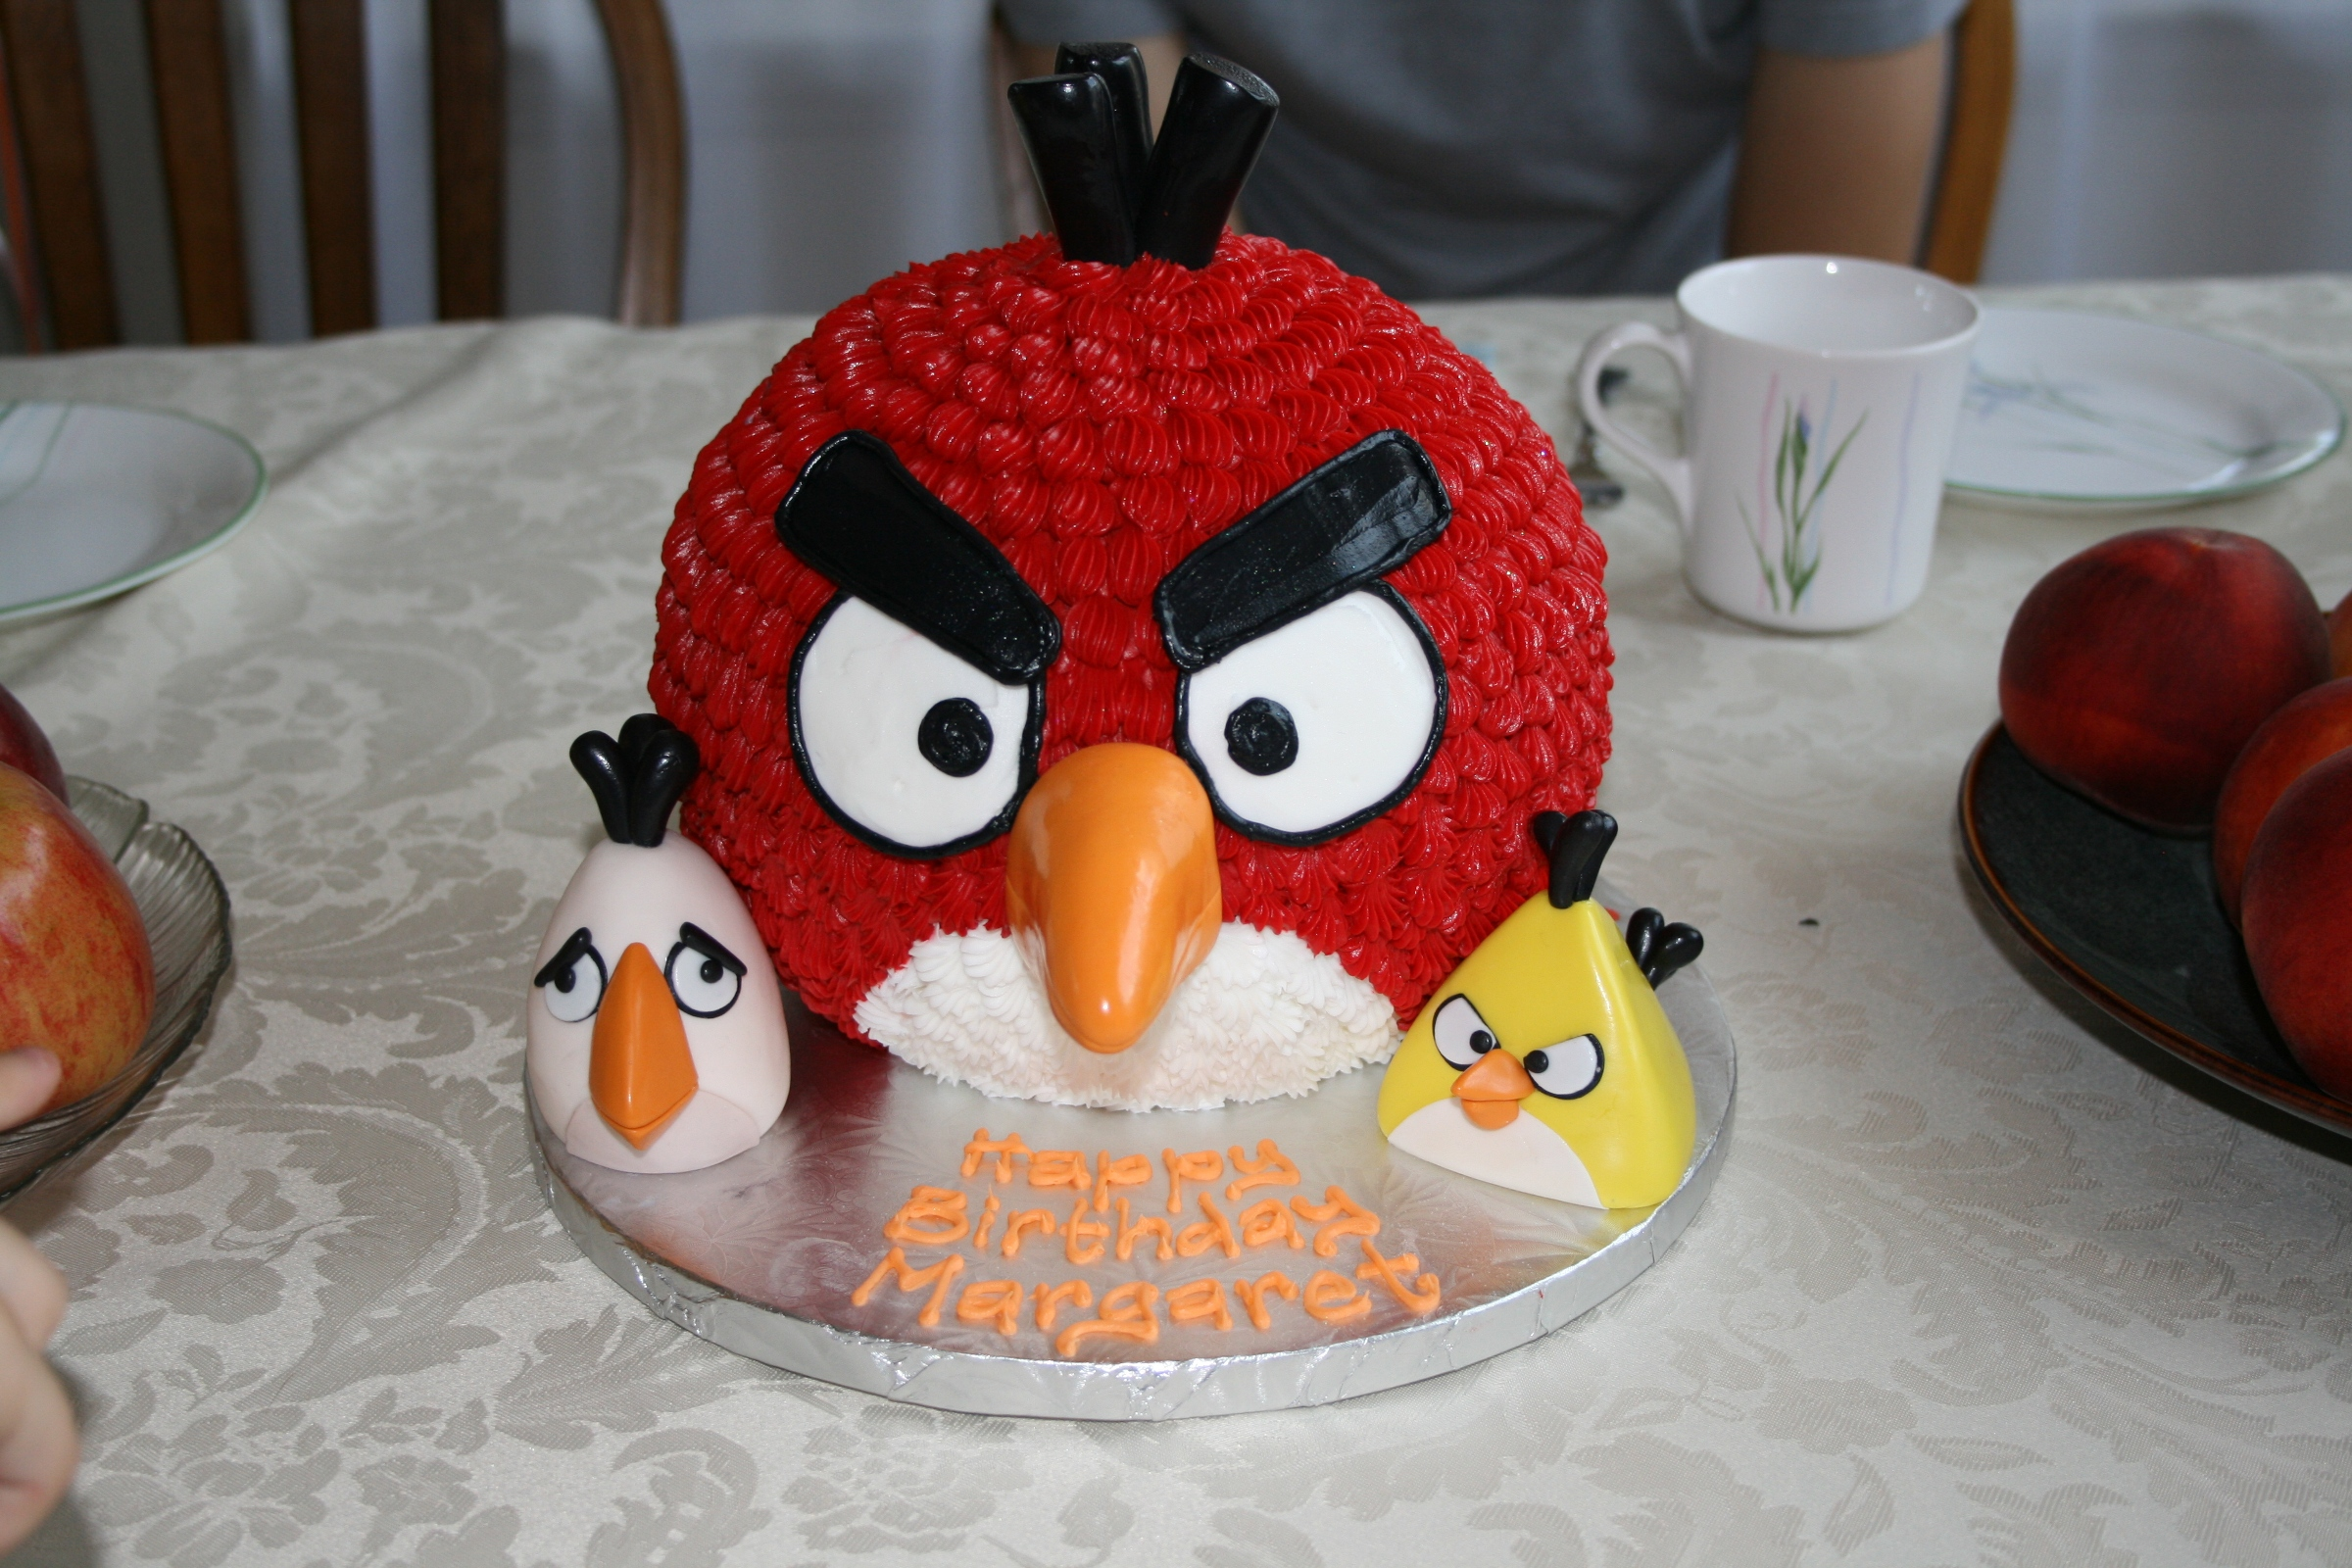 Admirable Birthday Cakes In Sw Austin West Live Shops Areas Texas Funny Birthday Cards Online Fluifree Goldxyz